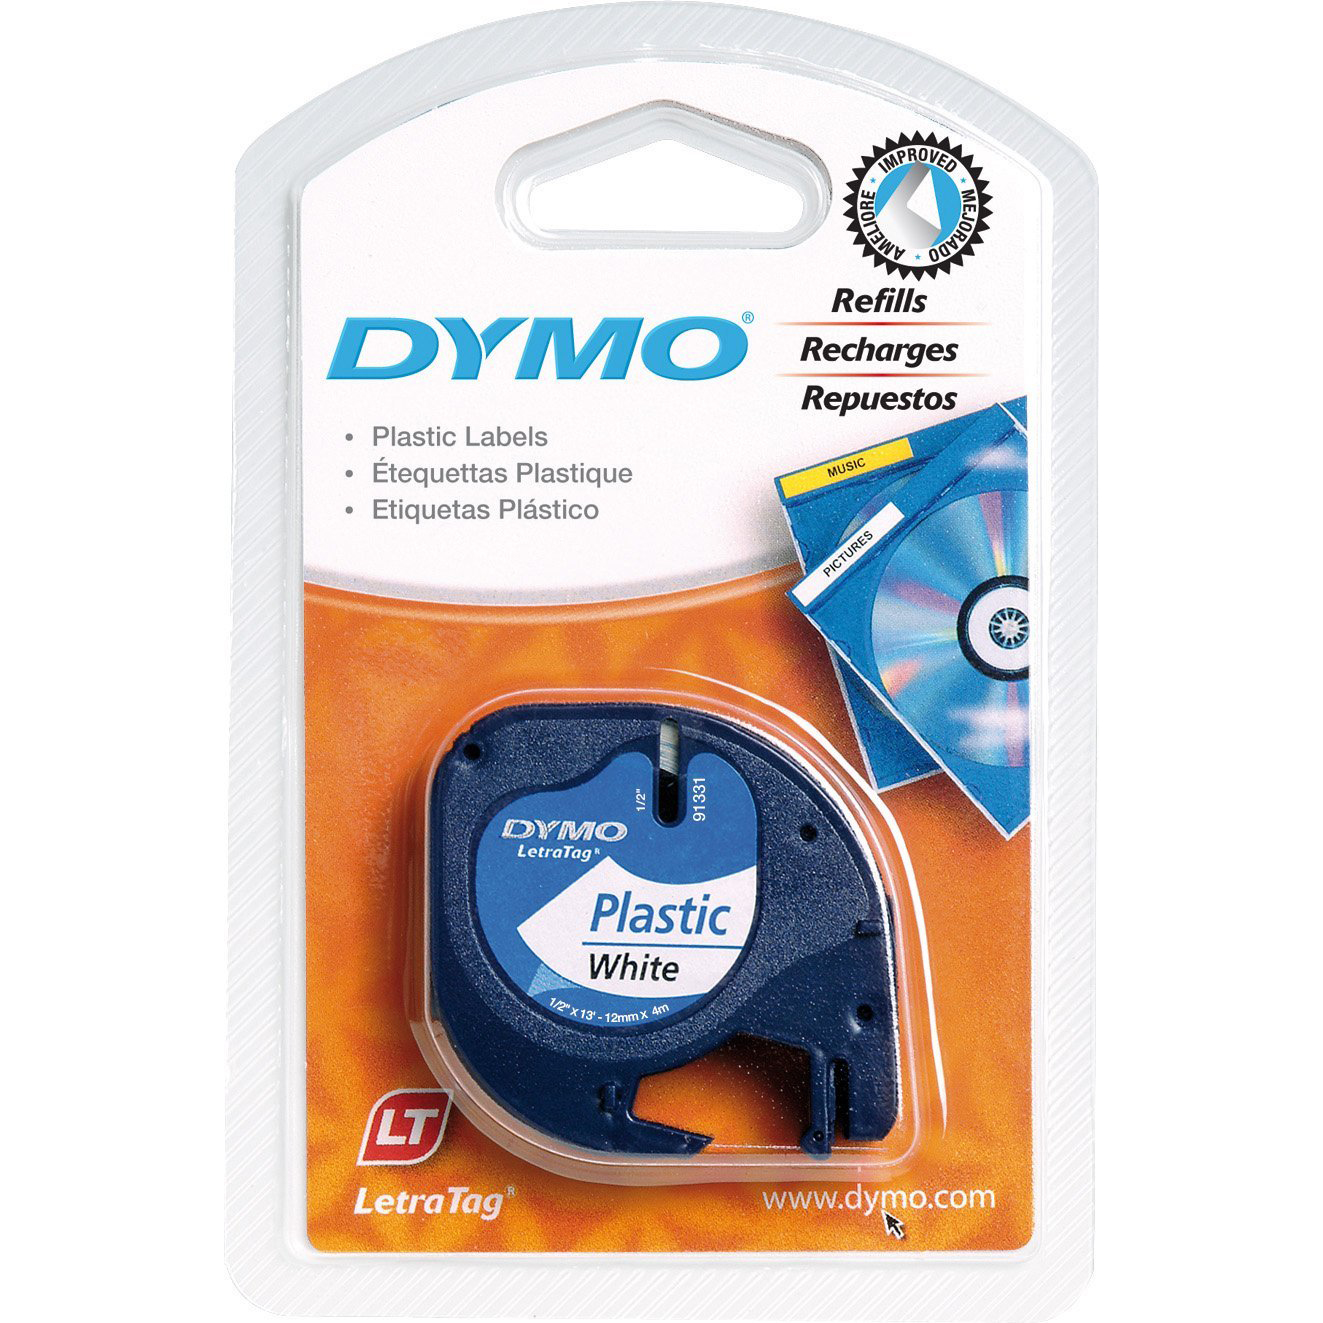 Dymo LetraTag S0721610 Plastic Label Tape 12mm x 4m - Black on White (roll)